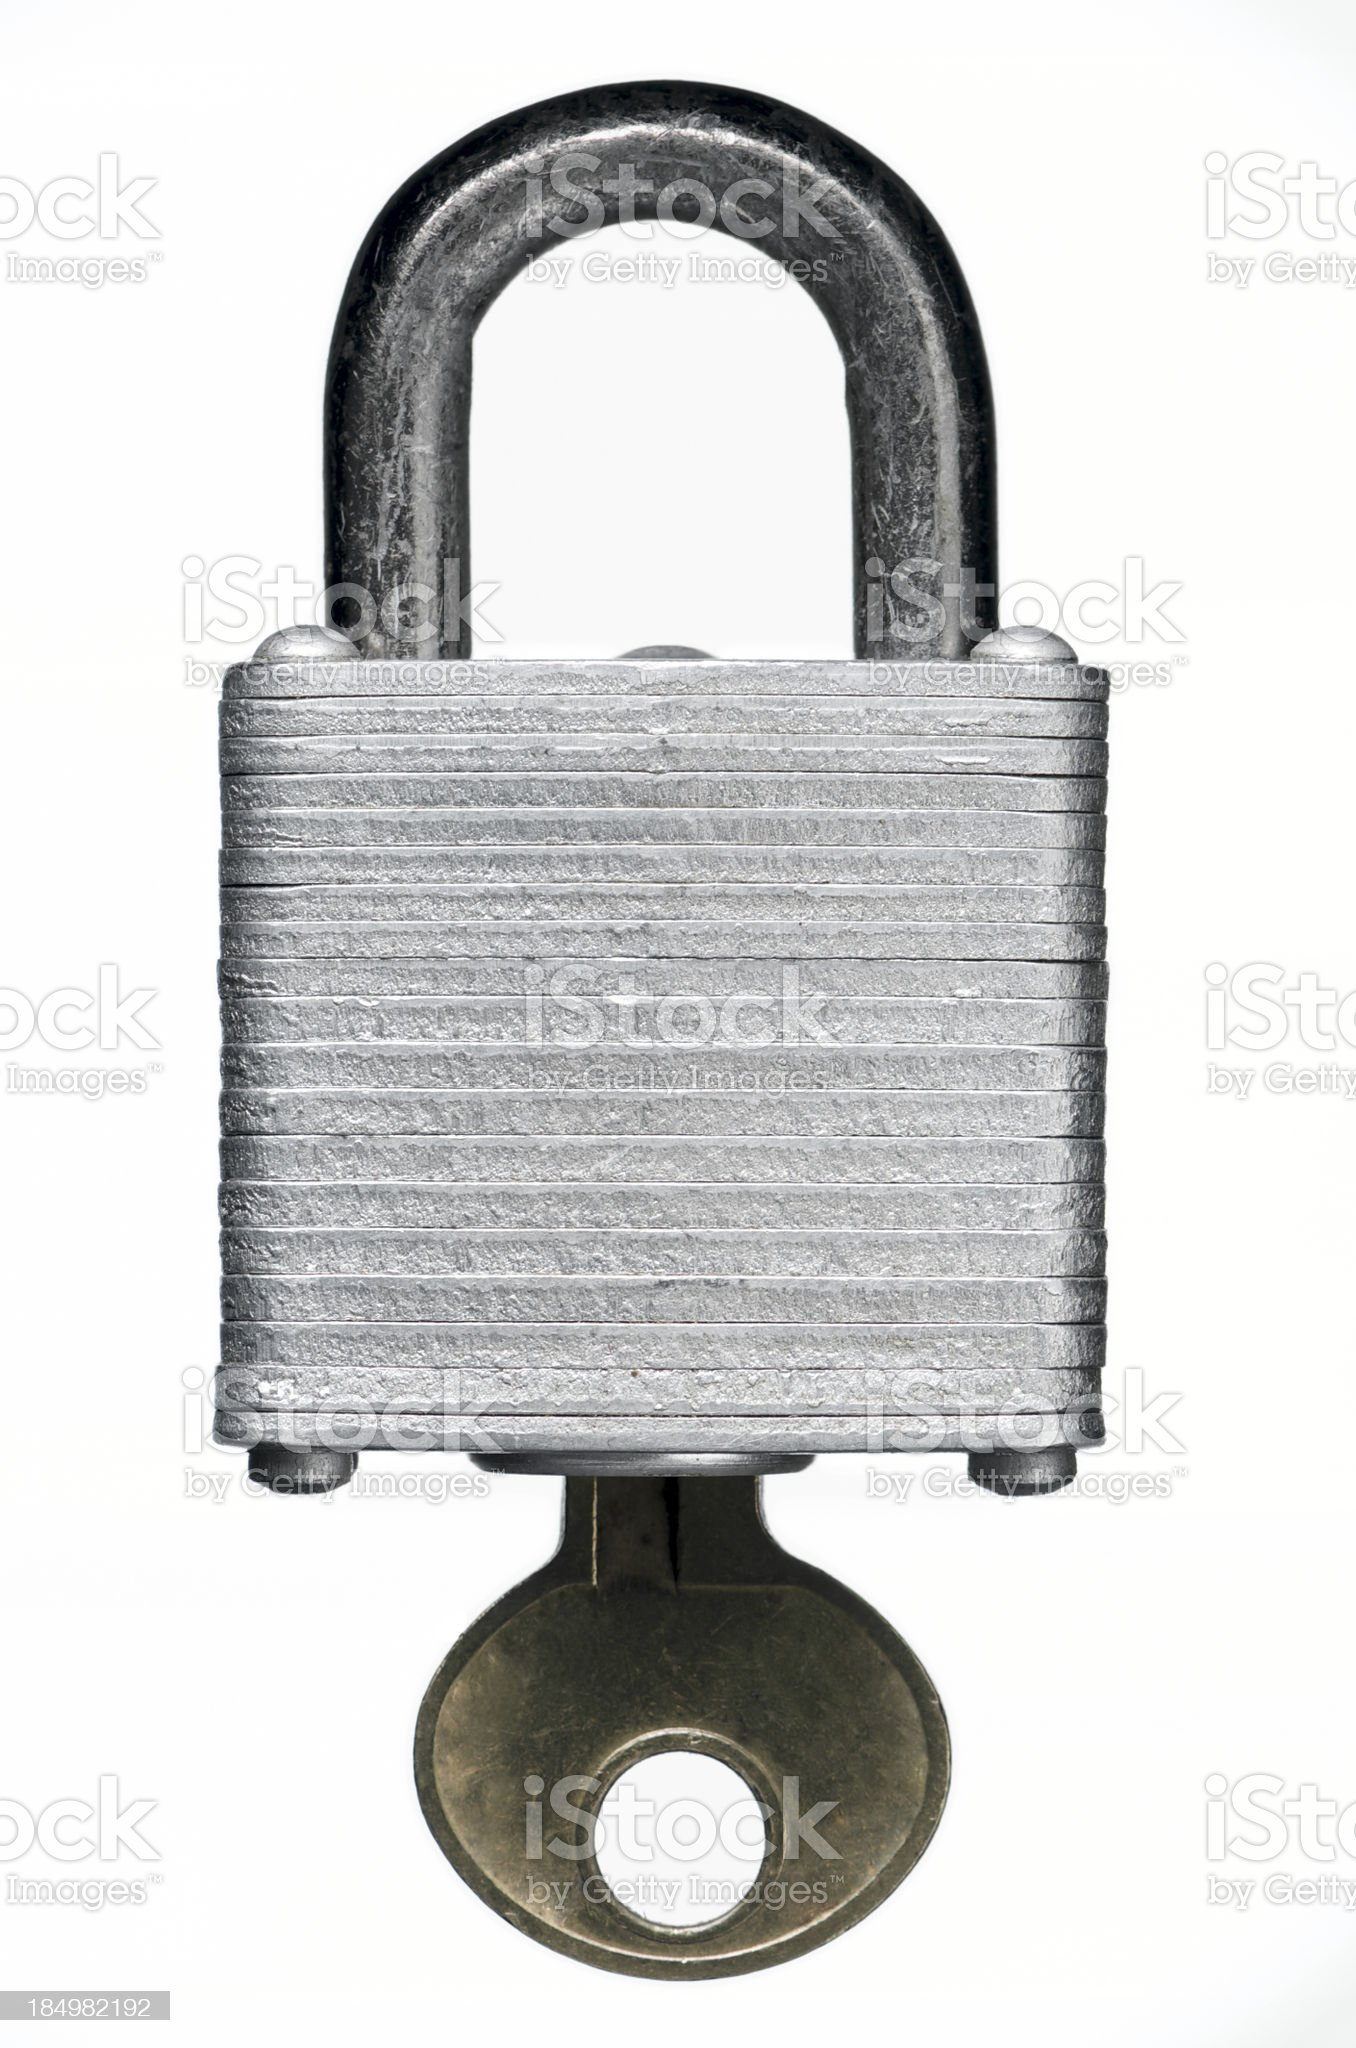 Worn Padlock and Key Isolated on White with Clipping Path royalty-free stock photo